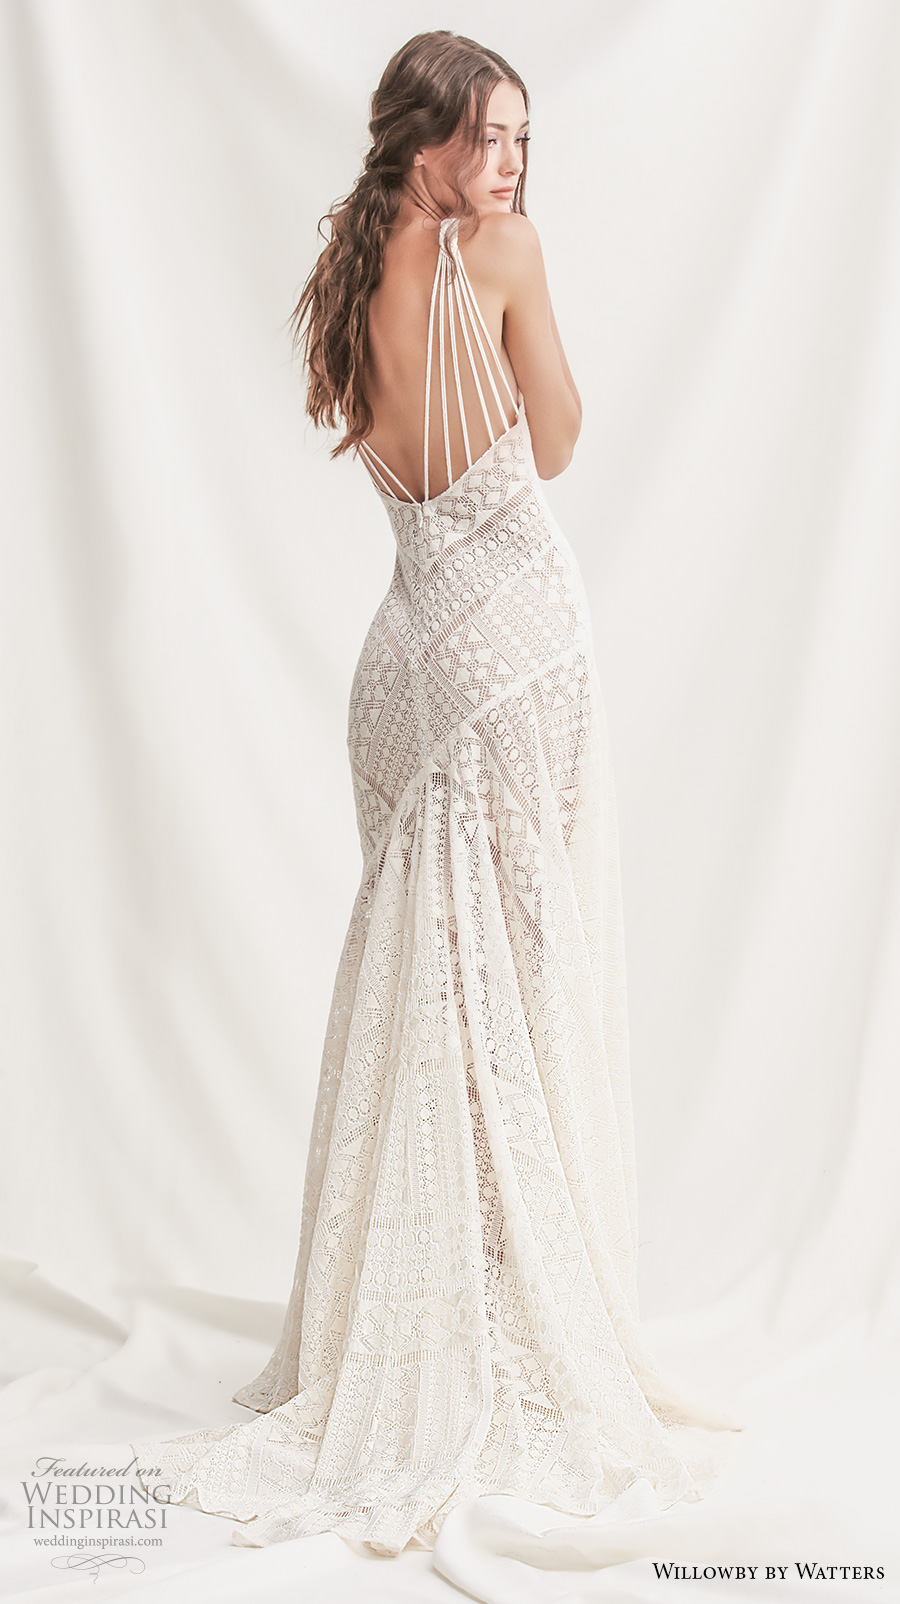 willowby by watters spring 2019 bridal sleeveless halter neck full embellishment elegant modern sheath wedding dress v back sweep train (5) bv